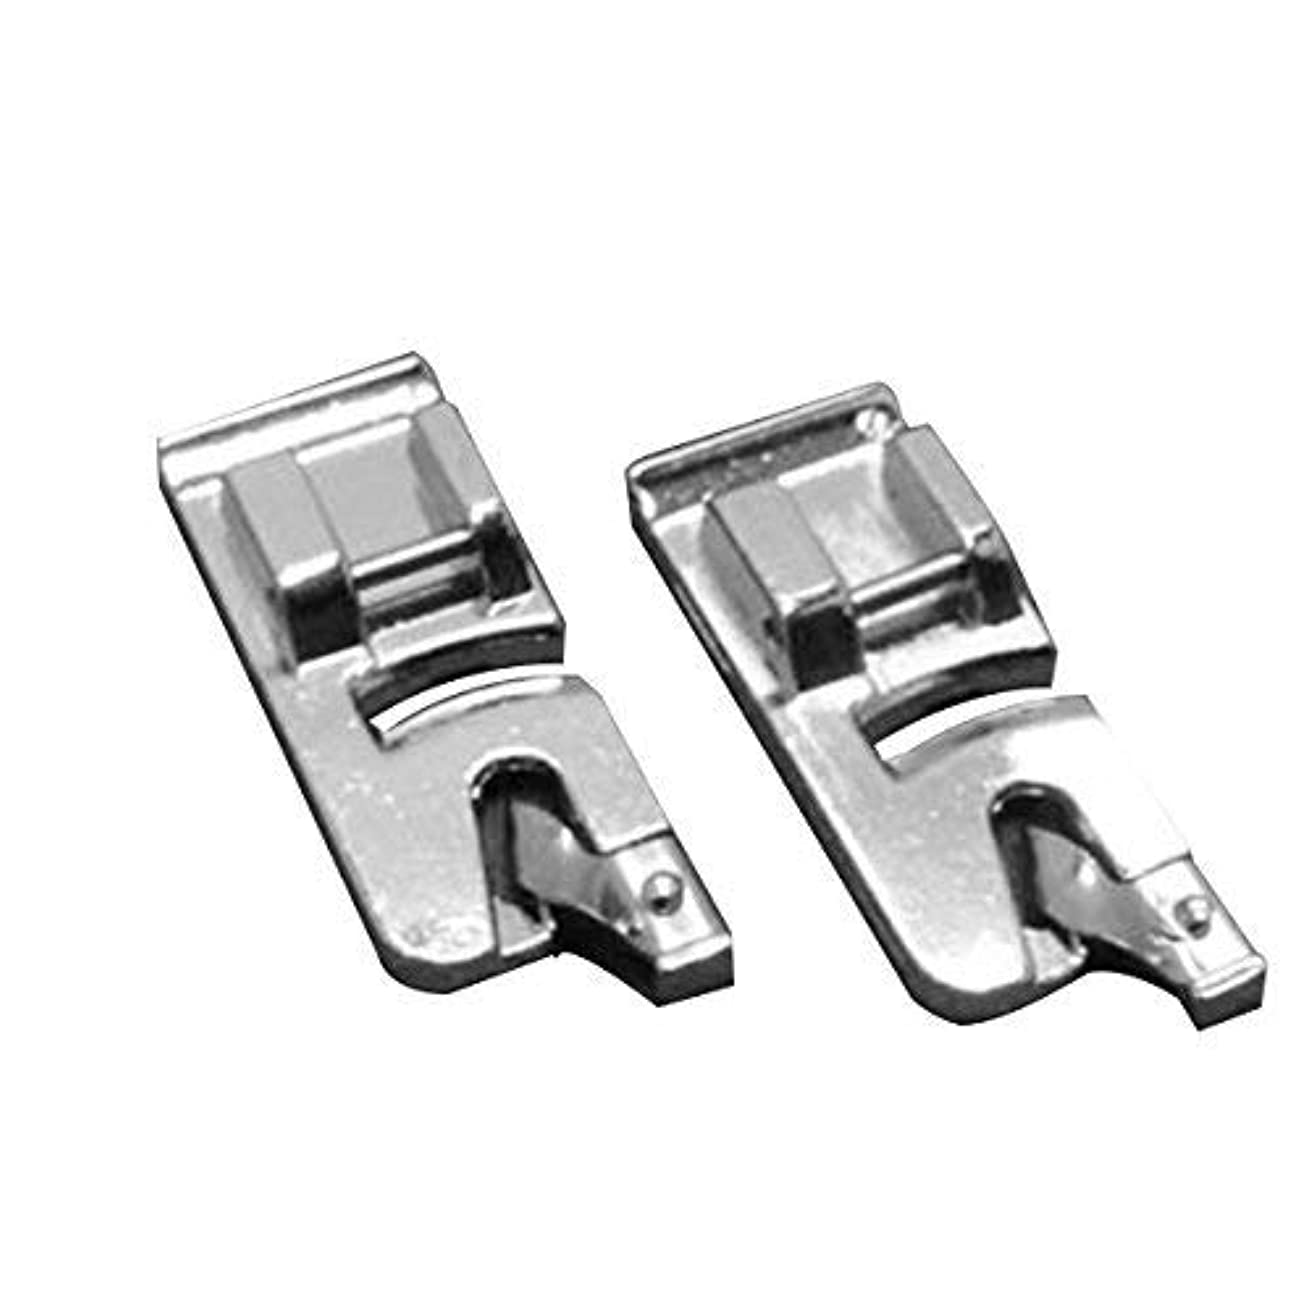 Tinksky Snap-on Rolled Hem Presser Feet for Low Shank Sewing Machines,6mm and 4mm,Pack of 2